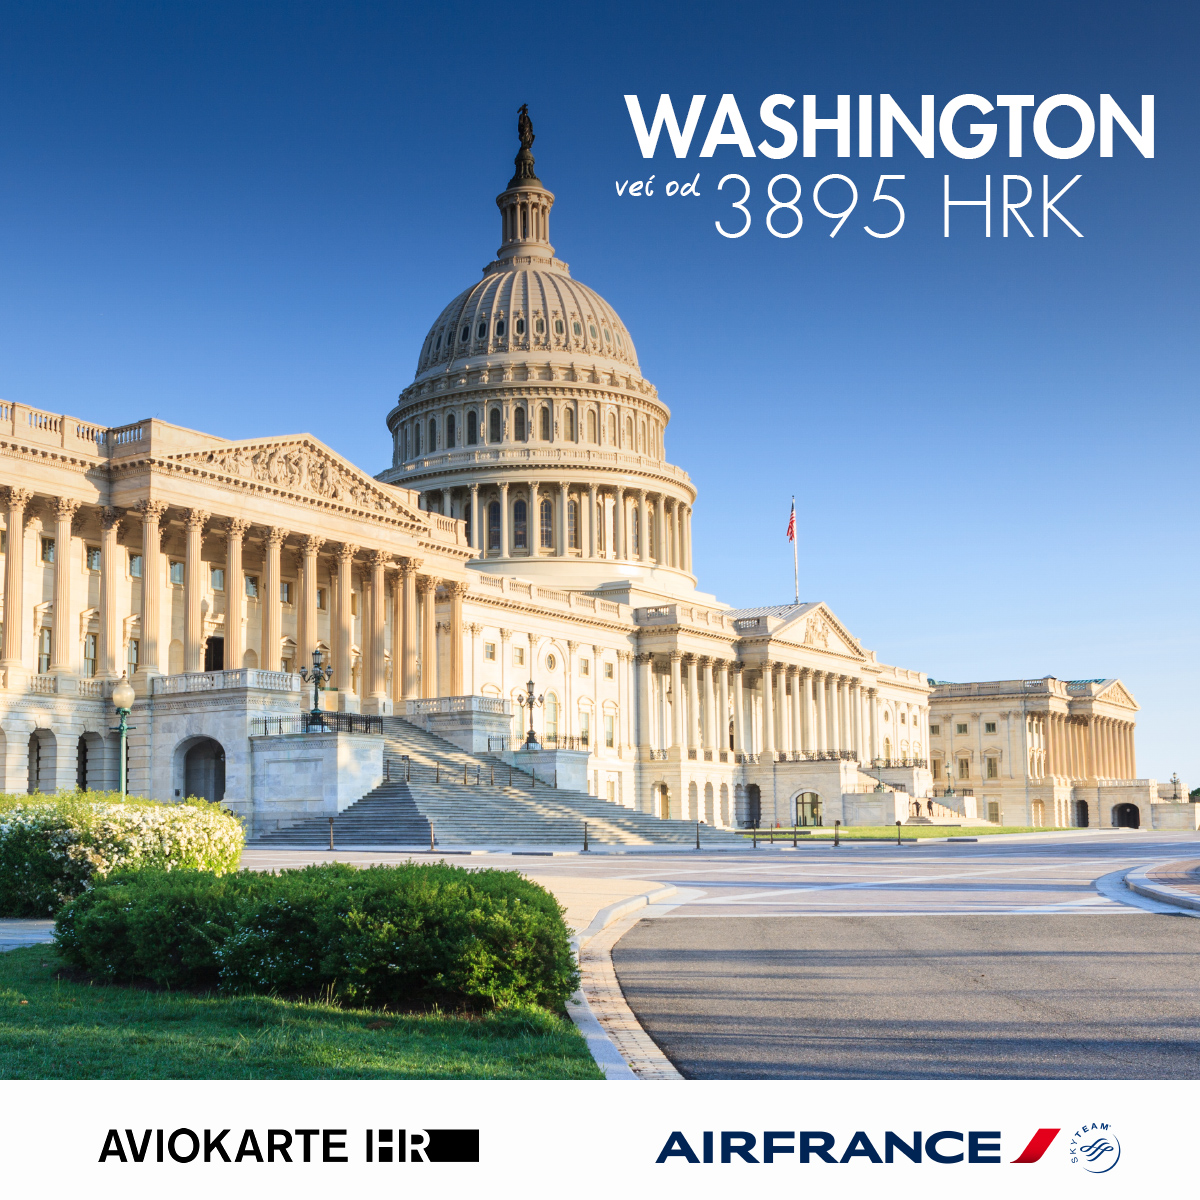 Washington vizual, Washington već od 1400 kuna, Washington jeftine avio karte, putovanje za Washington